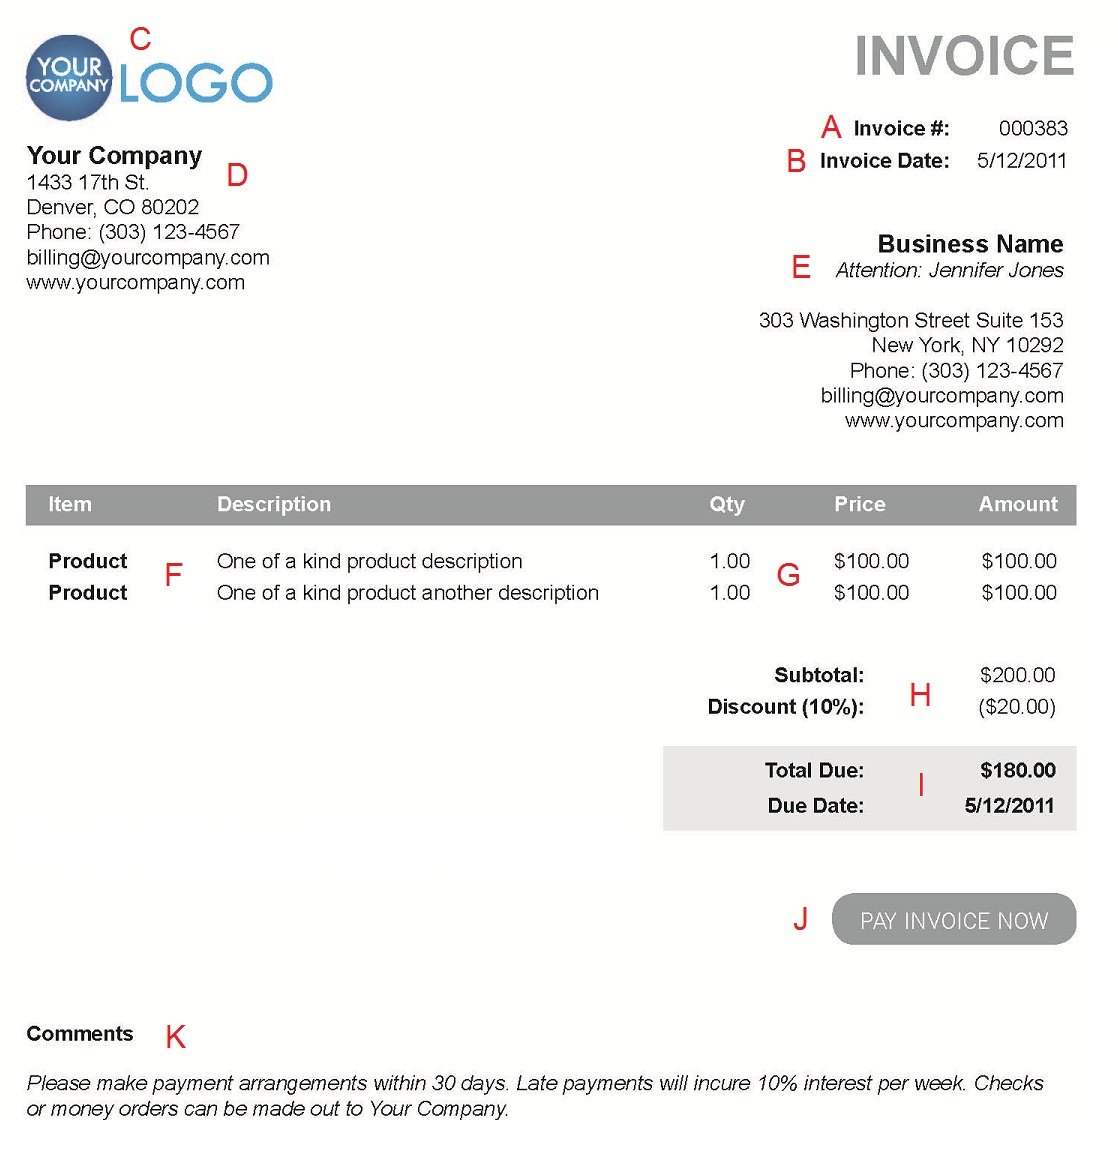 Bringjacobolivierhomeus  Seductive The  Different Sections Of An Electronic Payment Invoice With Gorgeous A  With Amusing Mazda Invoice Price  Also Fill In Invoice Template In Addition Sample Invoice For Services Rendered Template And Acura Rdx Invoice As Well As Commercial Proforma Invoice Additionally What Is Sales Invoice From Paysimplecom With Bringjacobolivierhomeus  Gorgeous The  Different Sections Of An Electronic Payment Invoice With Amusing A  And Seductive Mazda Invoice Price  Also Fill In Invoice Template In Addition Sample Invoice For Services Rendered Template From Paysimplecom